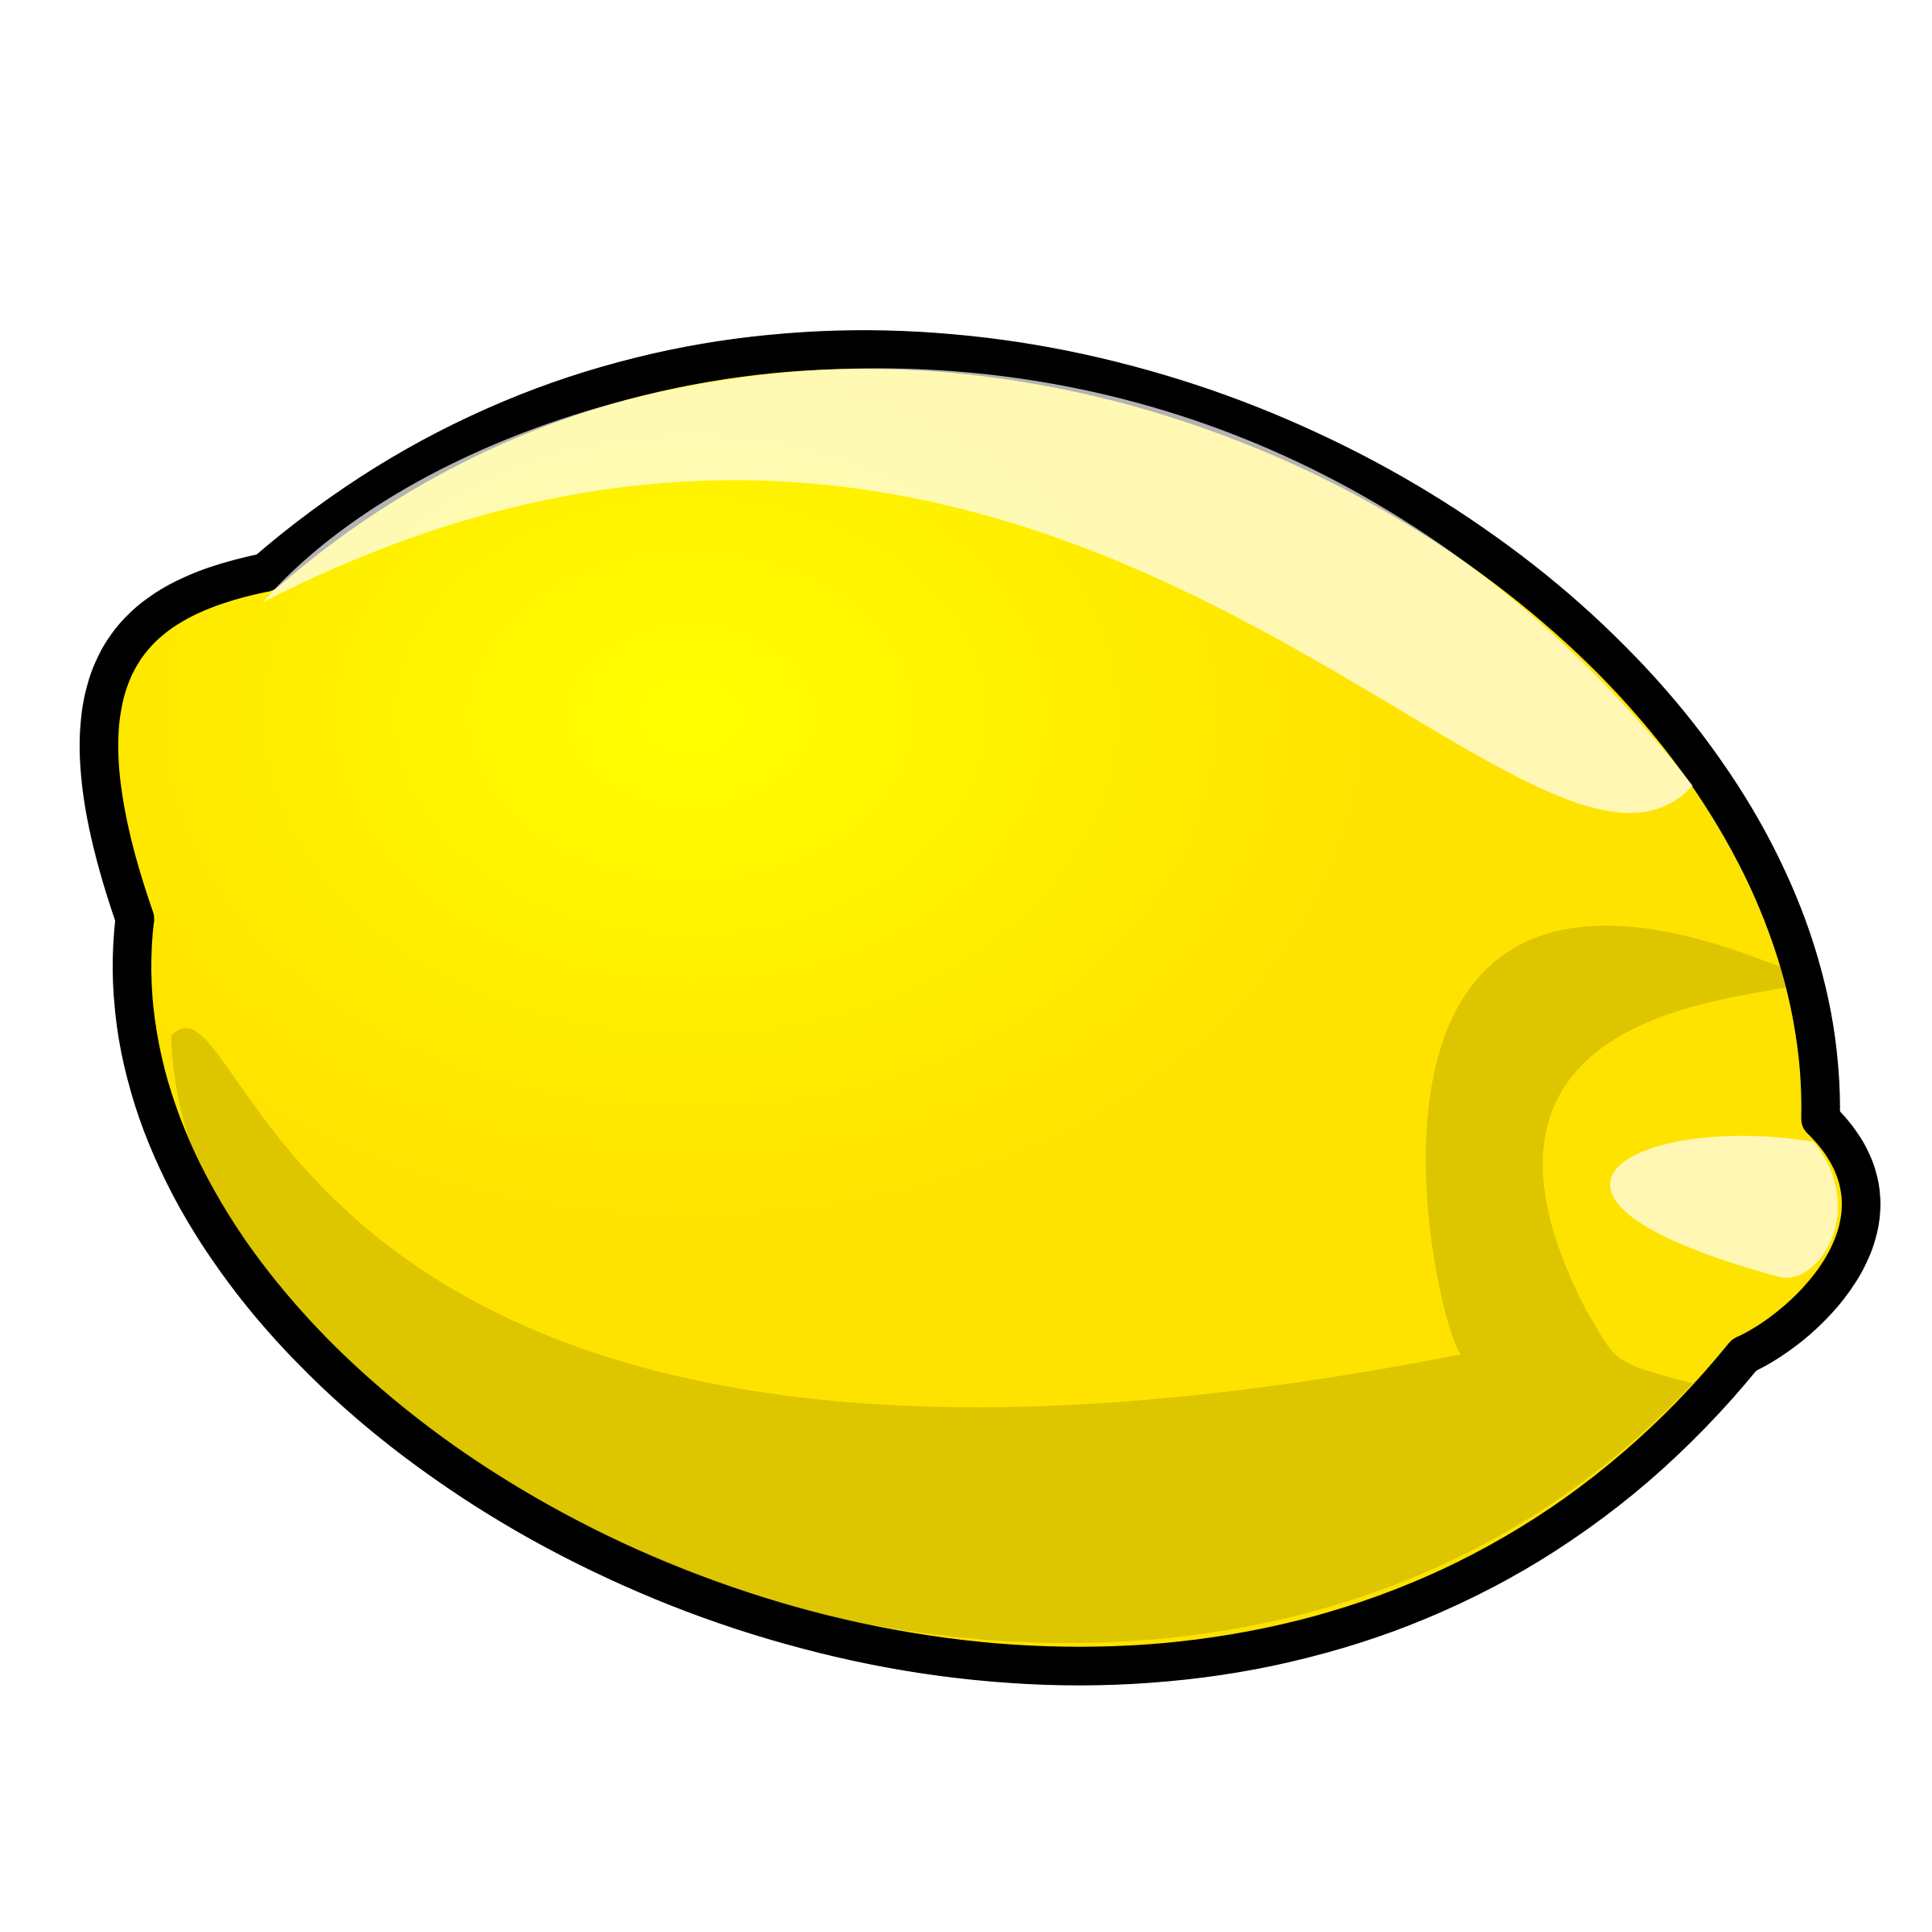 2400x2400 Lemon Slice Clipart